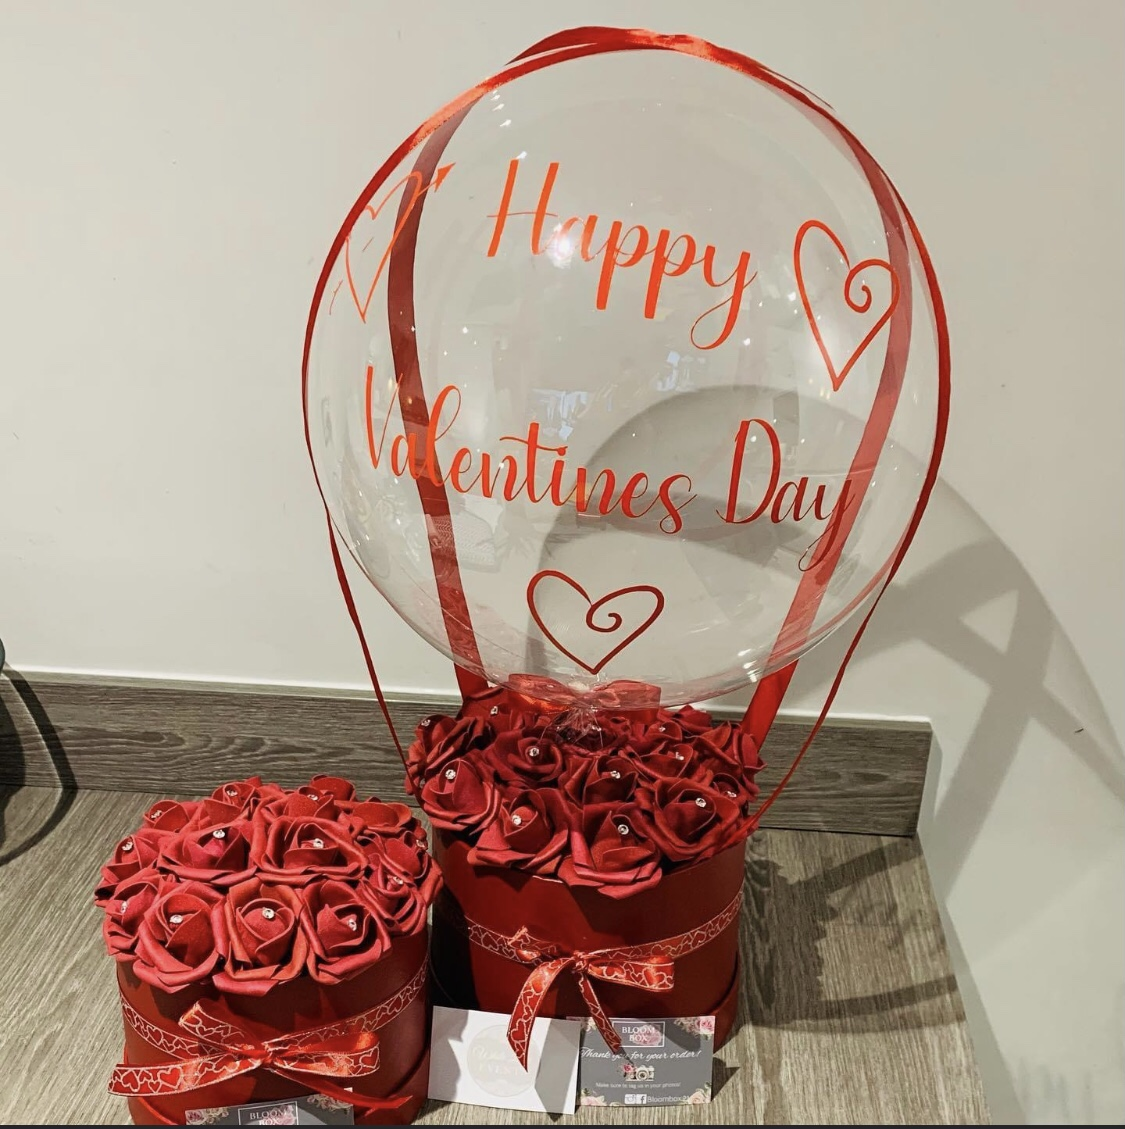 Valentines Day Gift Ideas for Lockdown - balloons